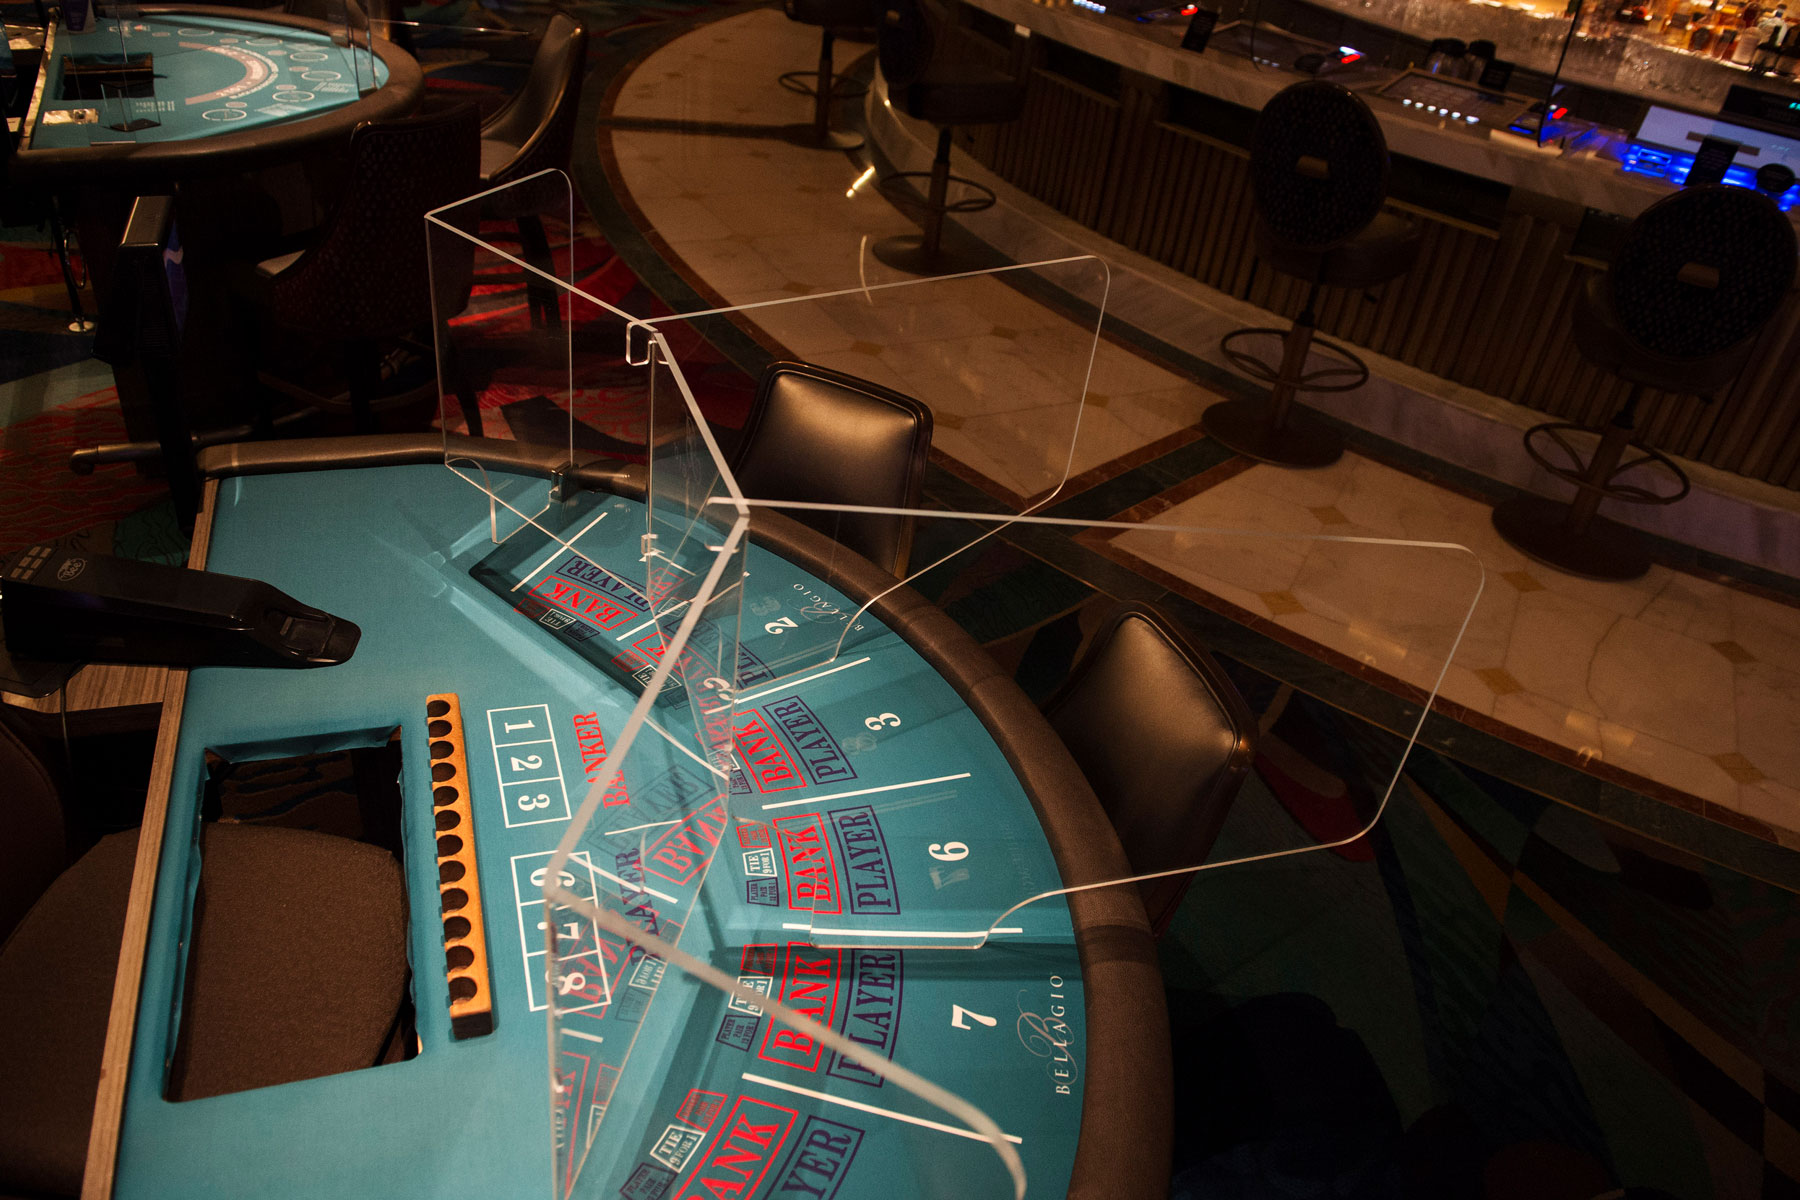 transparent partition at a casino table game